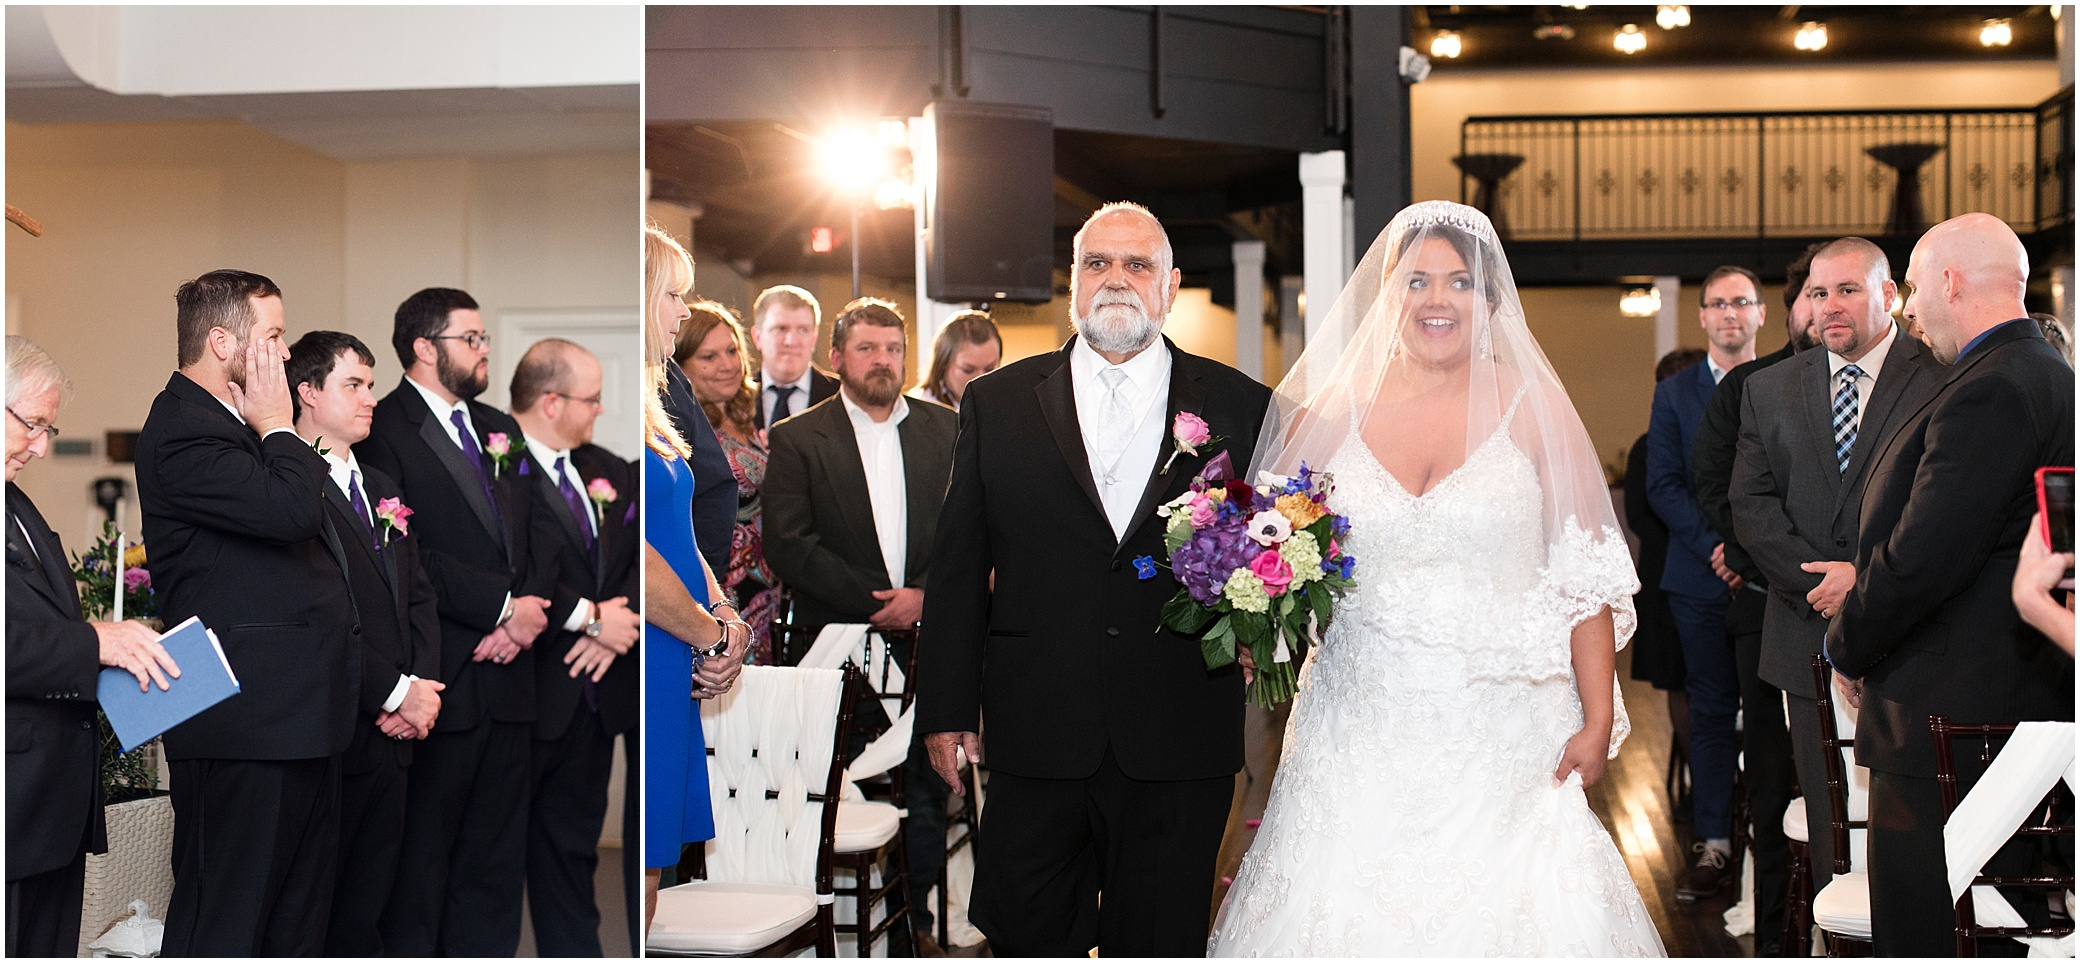 evening wedding ceremony, crystal clear event wedding giveaway, historic post office wedding, Waterford event rentals